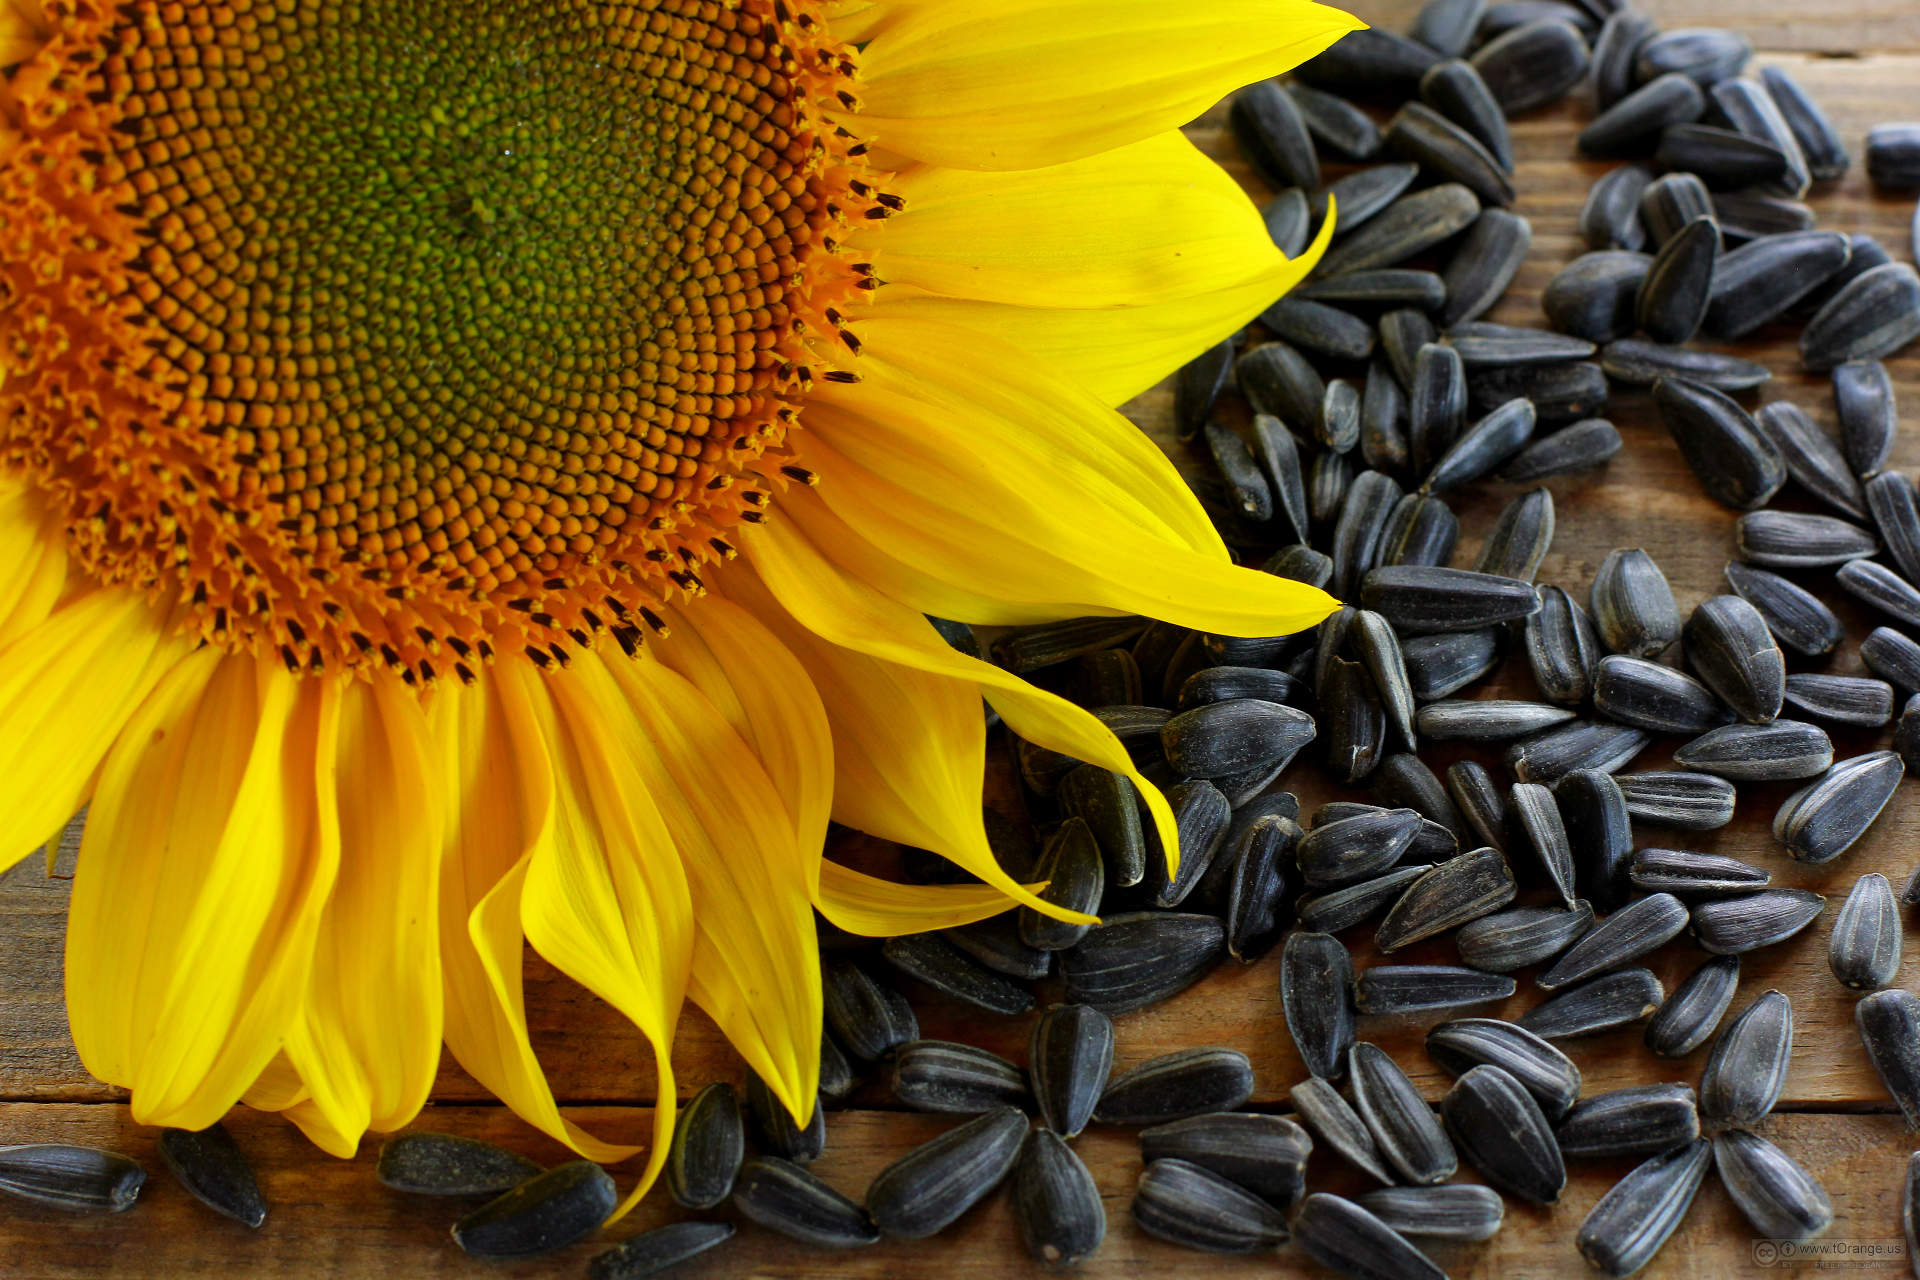 Oil seed sunflower